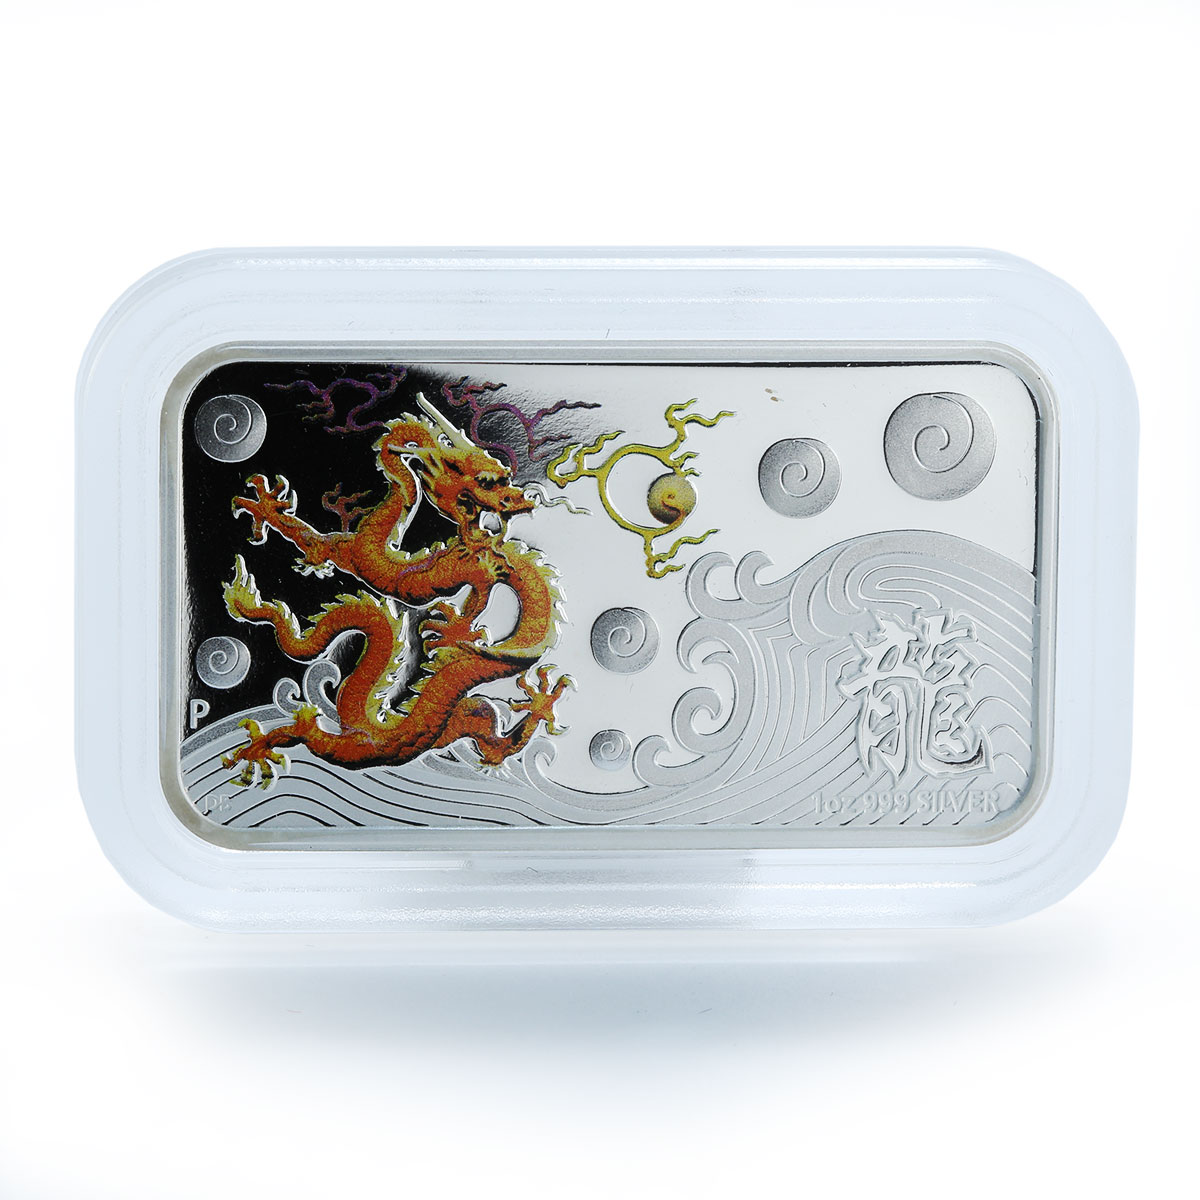 Cook Islands $1 Year of the Dragon Yellow 2012 Rectangular 1oz Silver Coin Proof